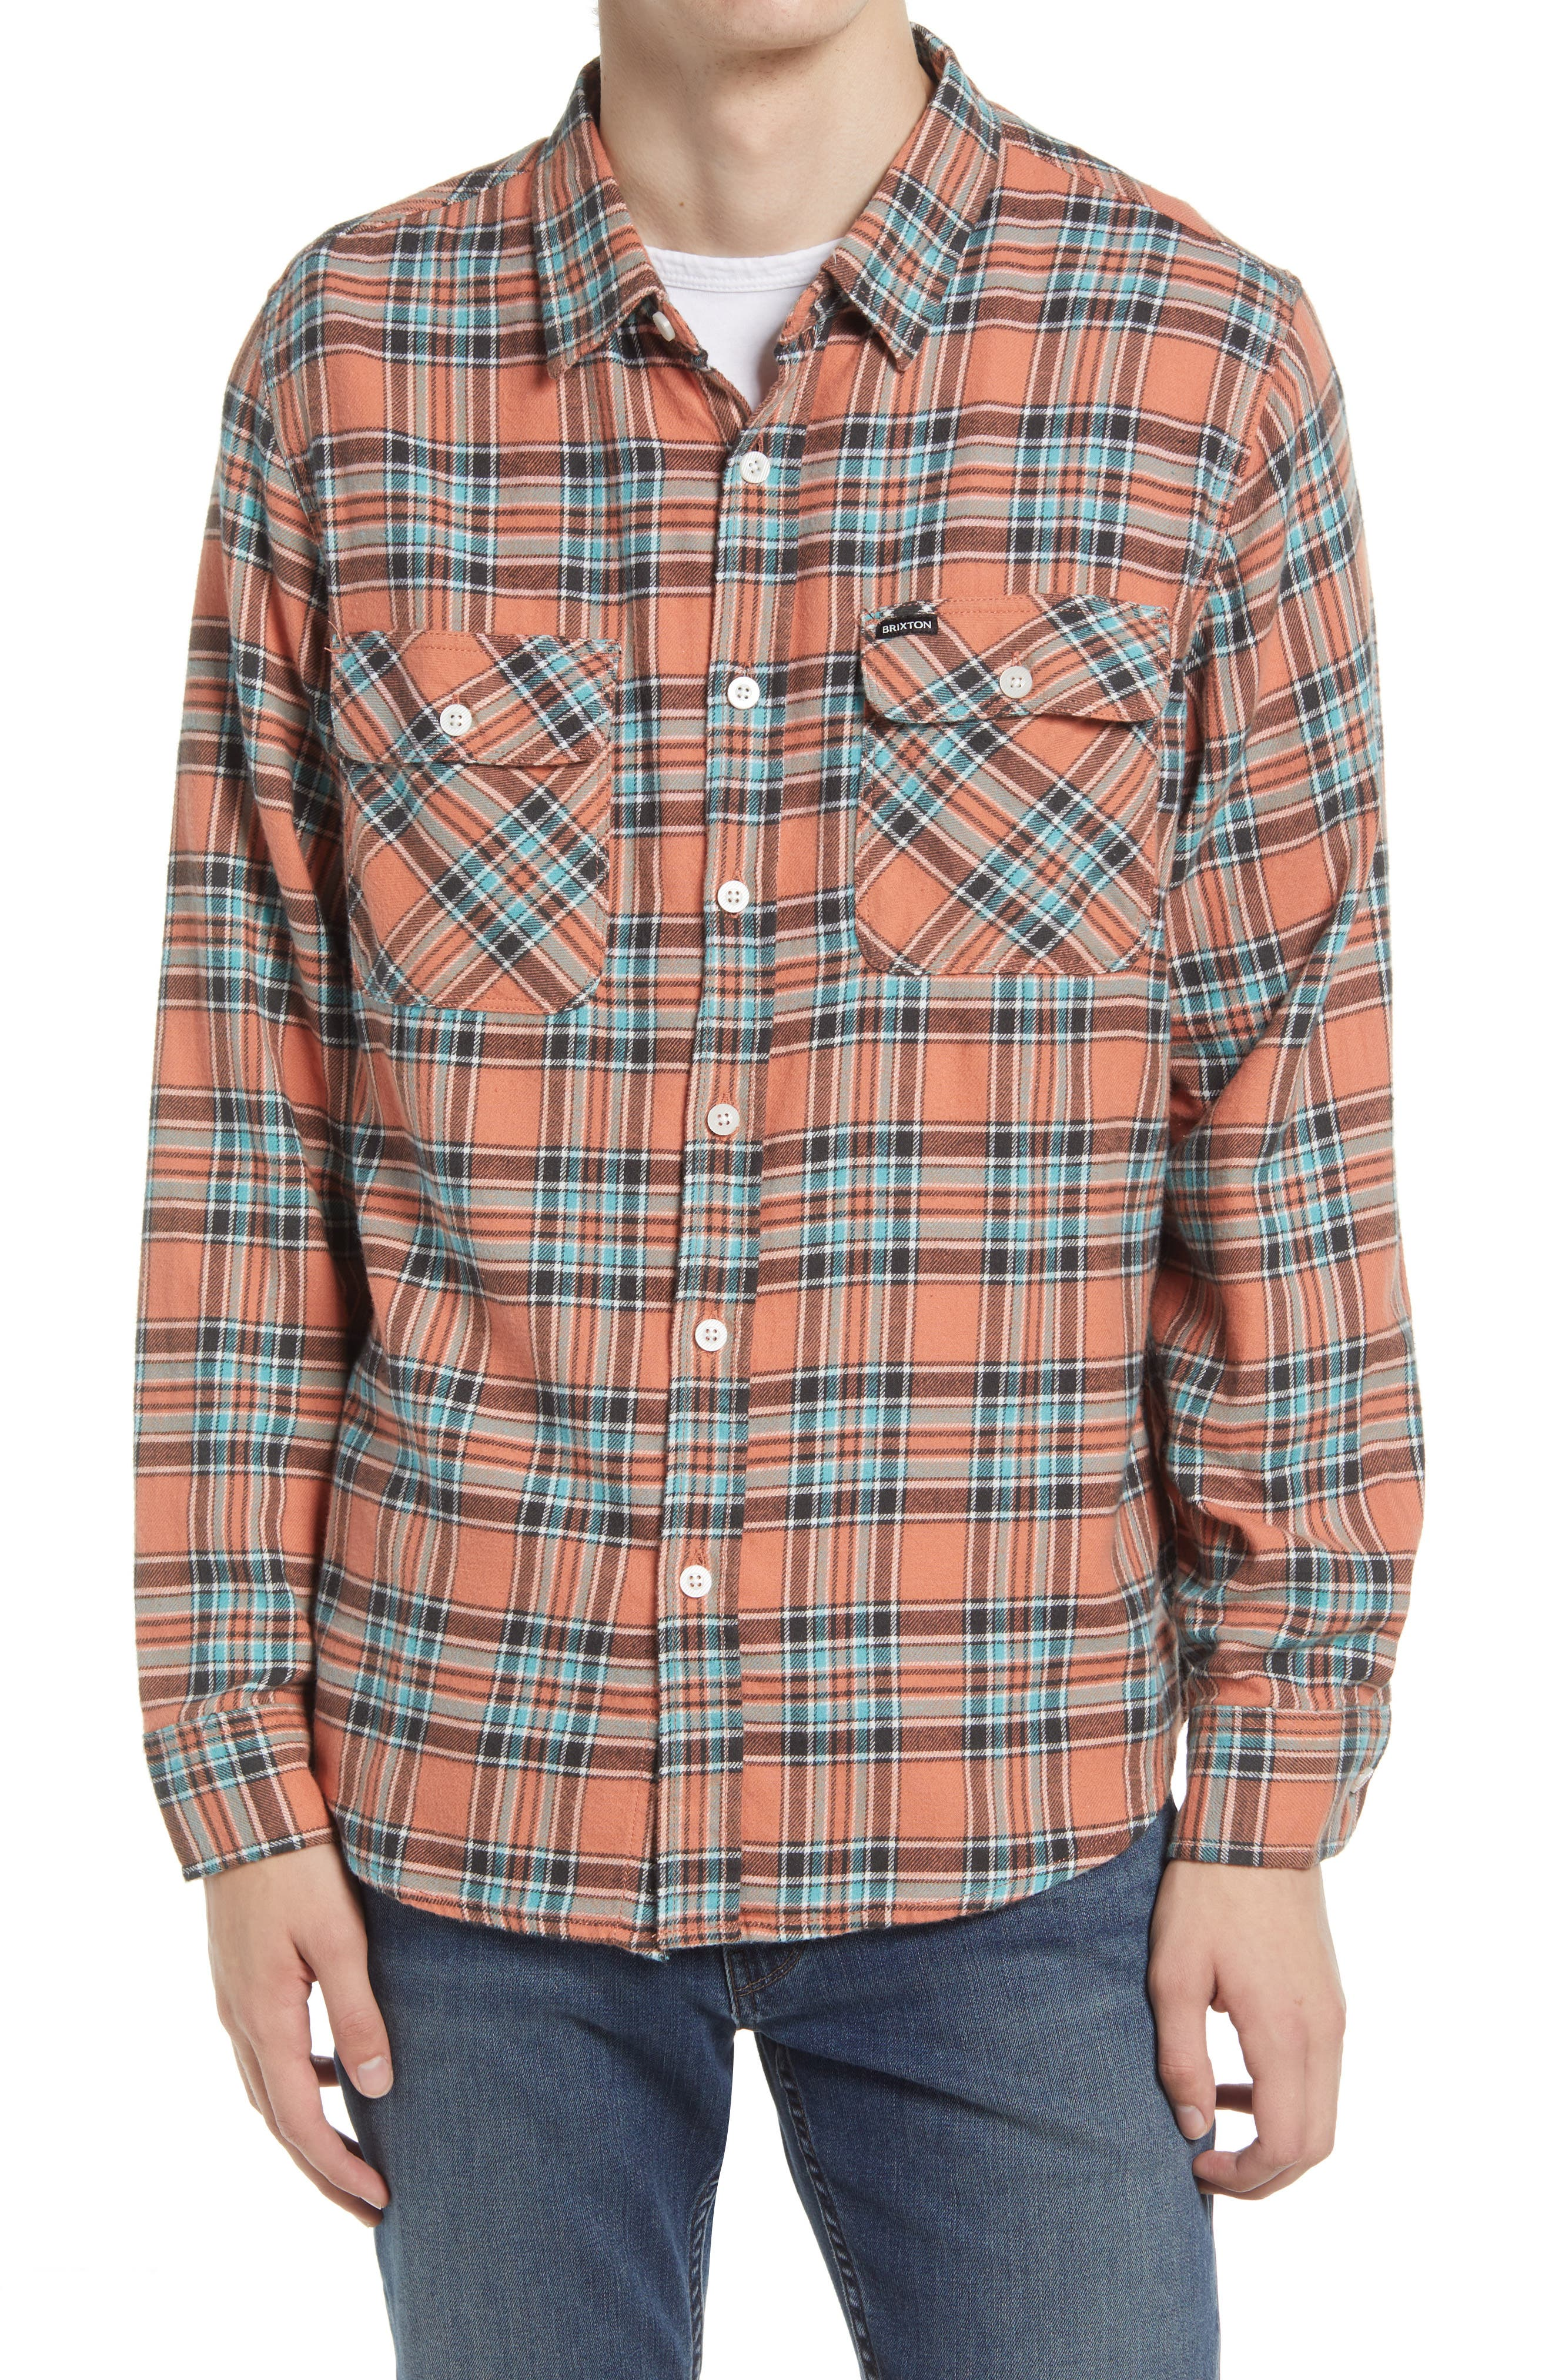 Bowery Plaid Flannel Button-Up Shirt